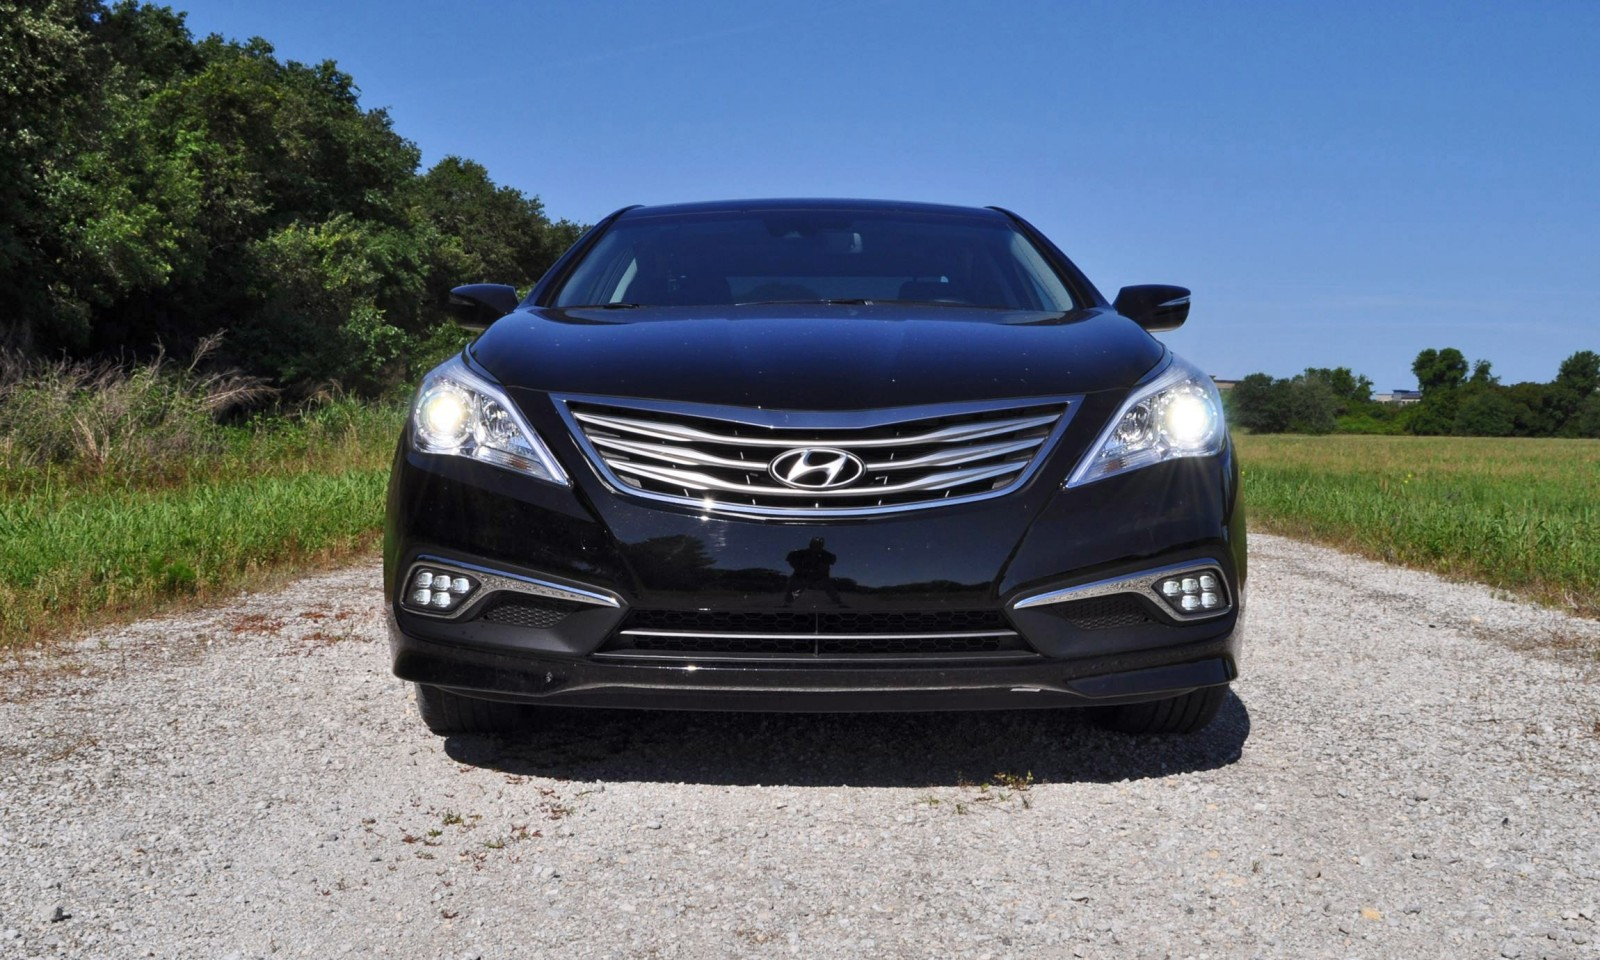 Road Test Review - 2015 Hyundai AZERA Limited 9